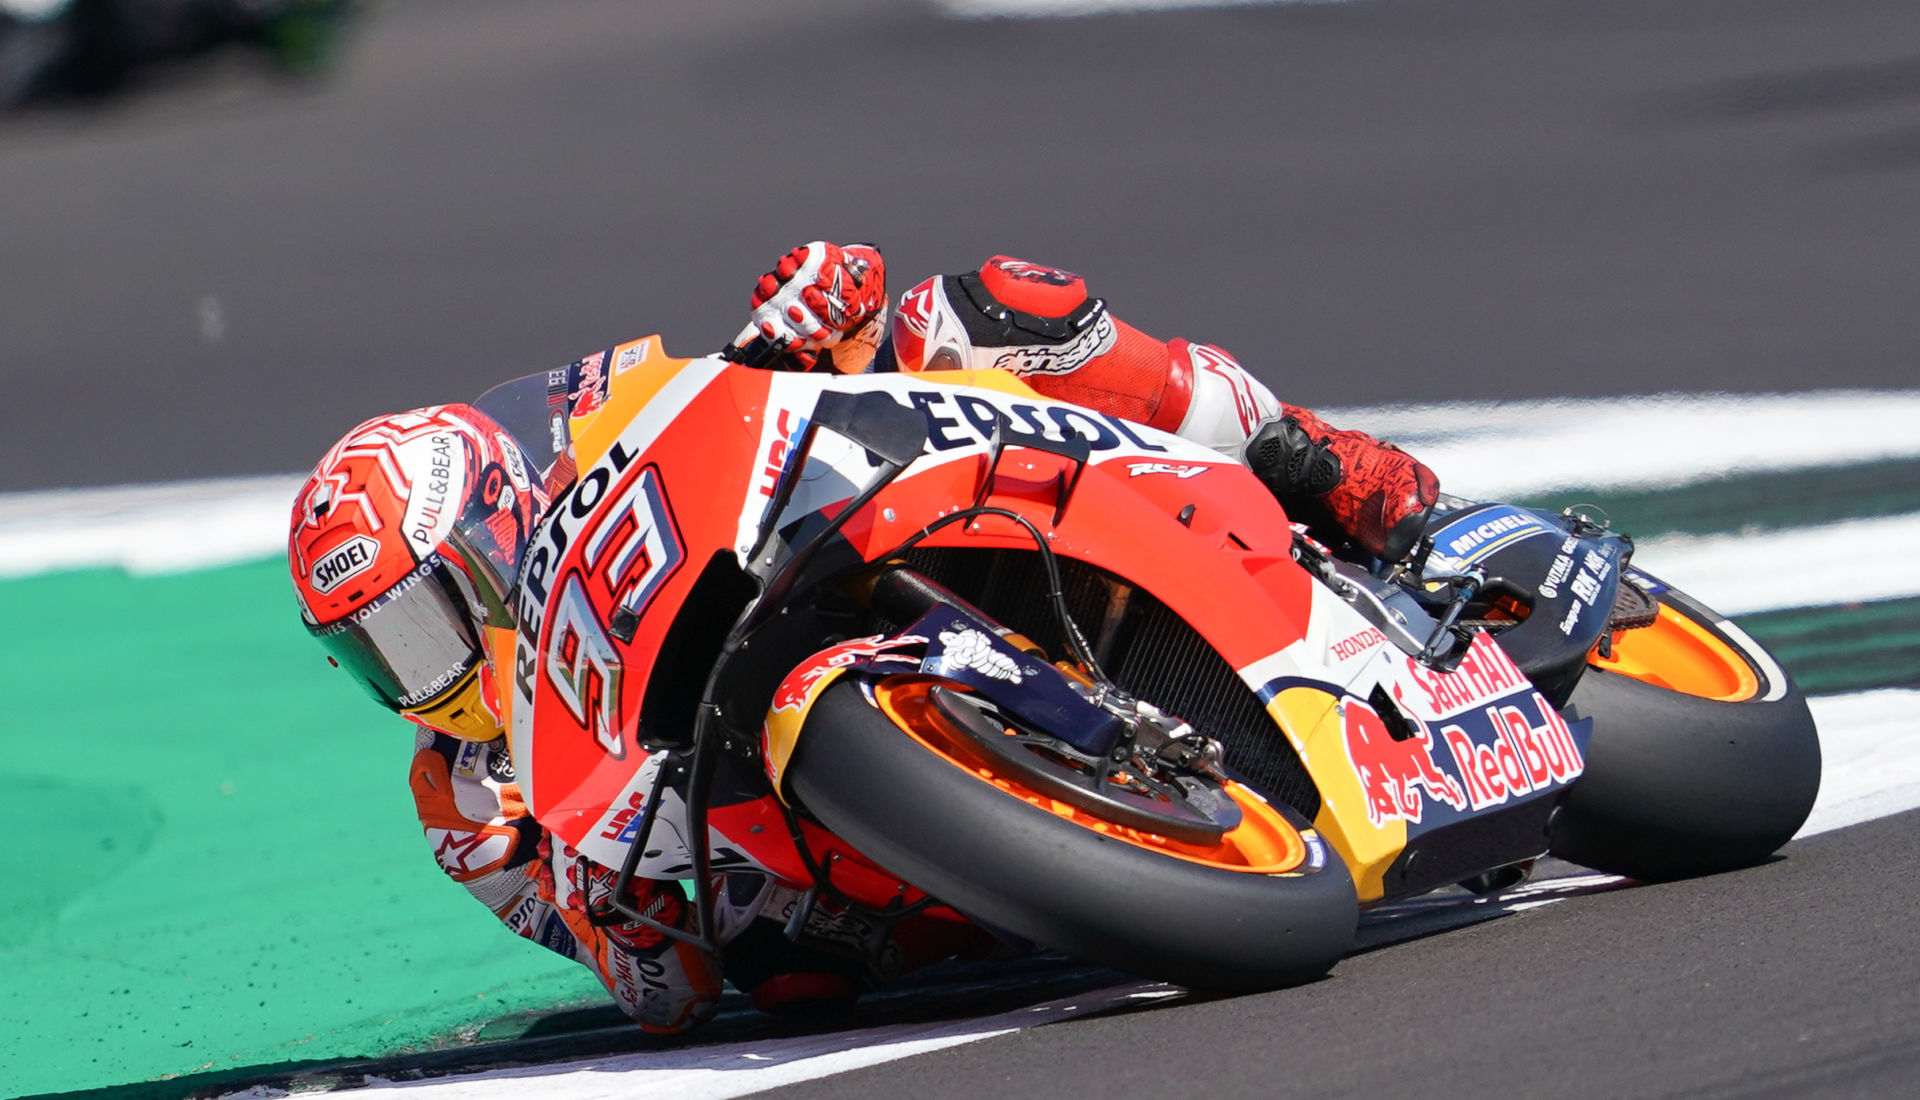 MotoGP: Marc Marquez Can Clinch World Championship This Coming Weekend In Thailand